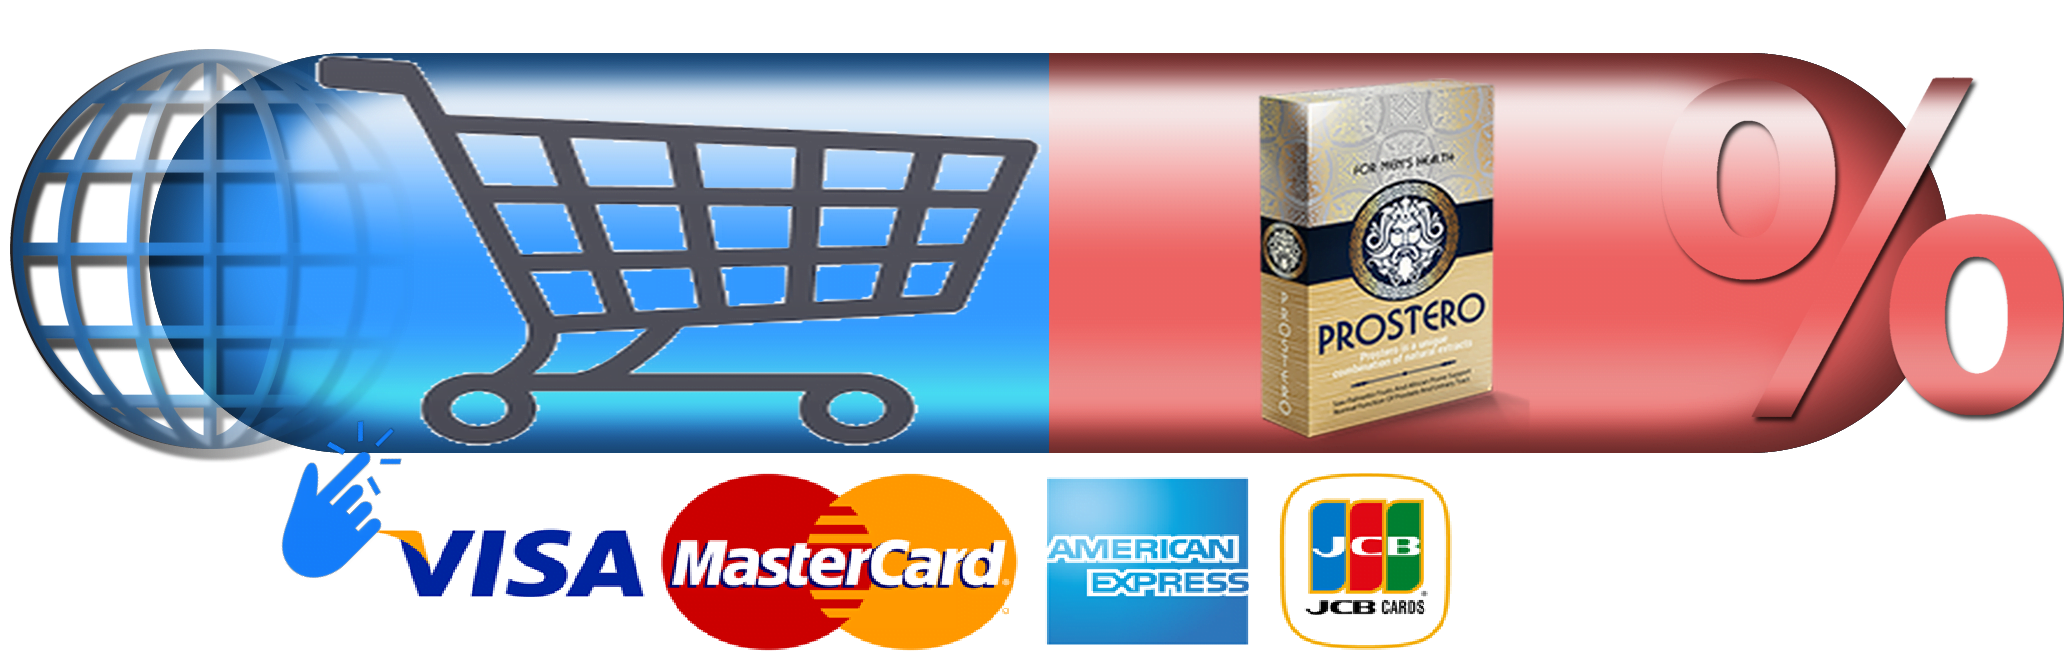 Prostero buy at a discount